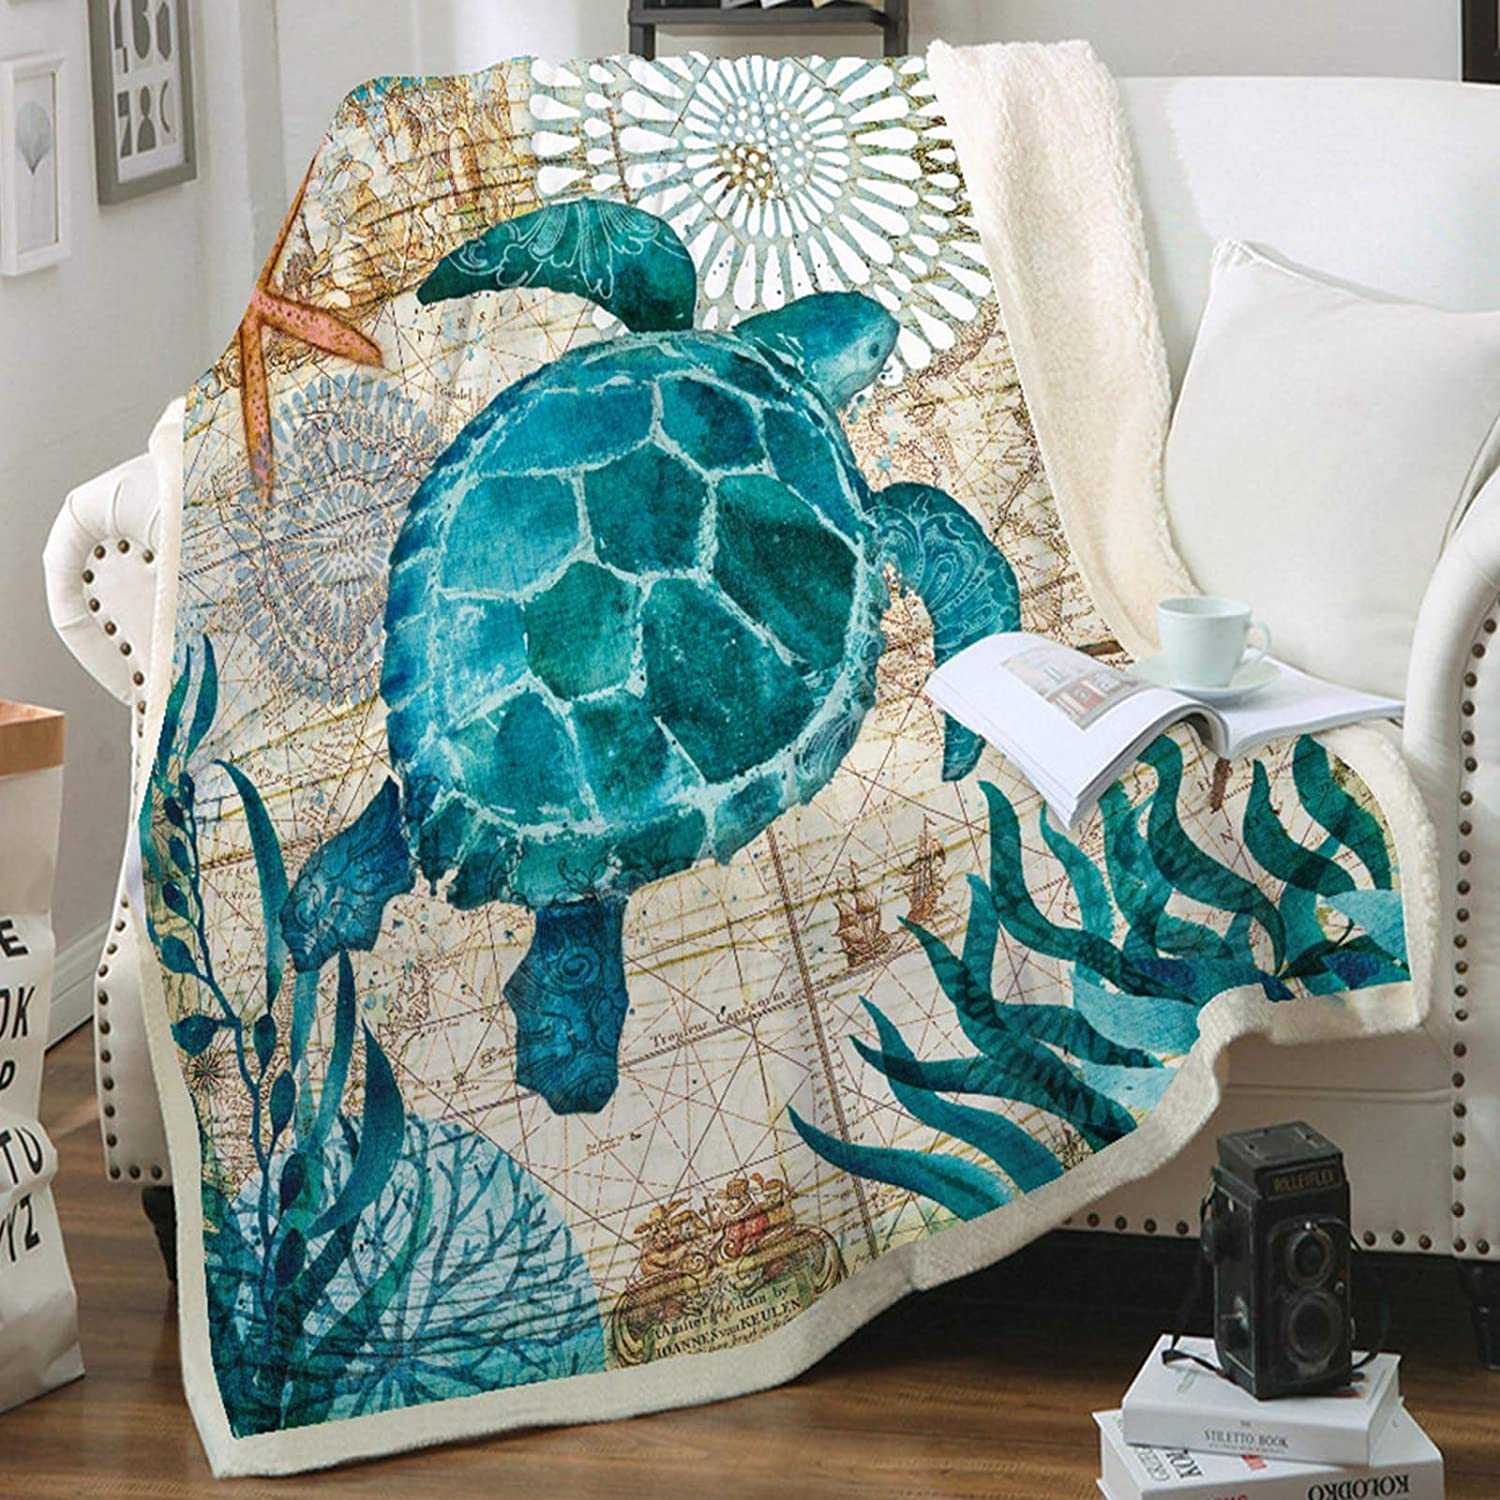 Qucover Sea Turtle Blankets 3D Printing Coral Velvet Throw Blanket Throws Cushion with Sherpa Lining for Couch Sofa Travel 59x51 Inch